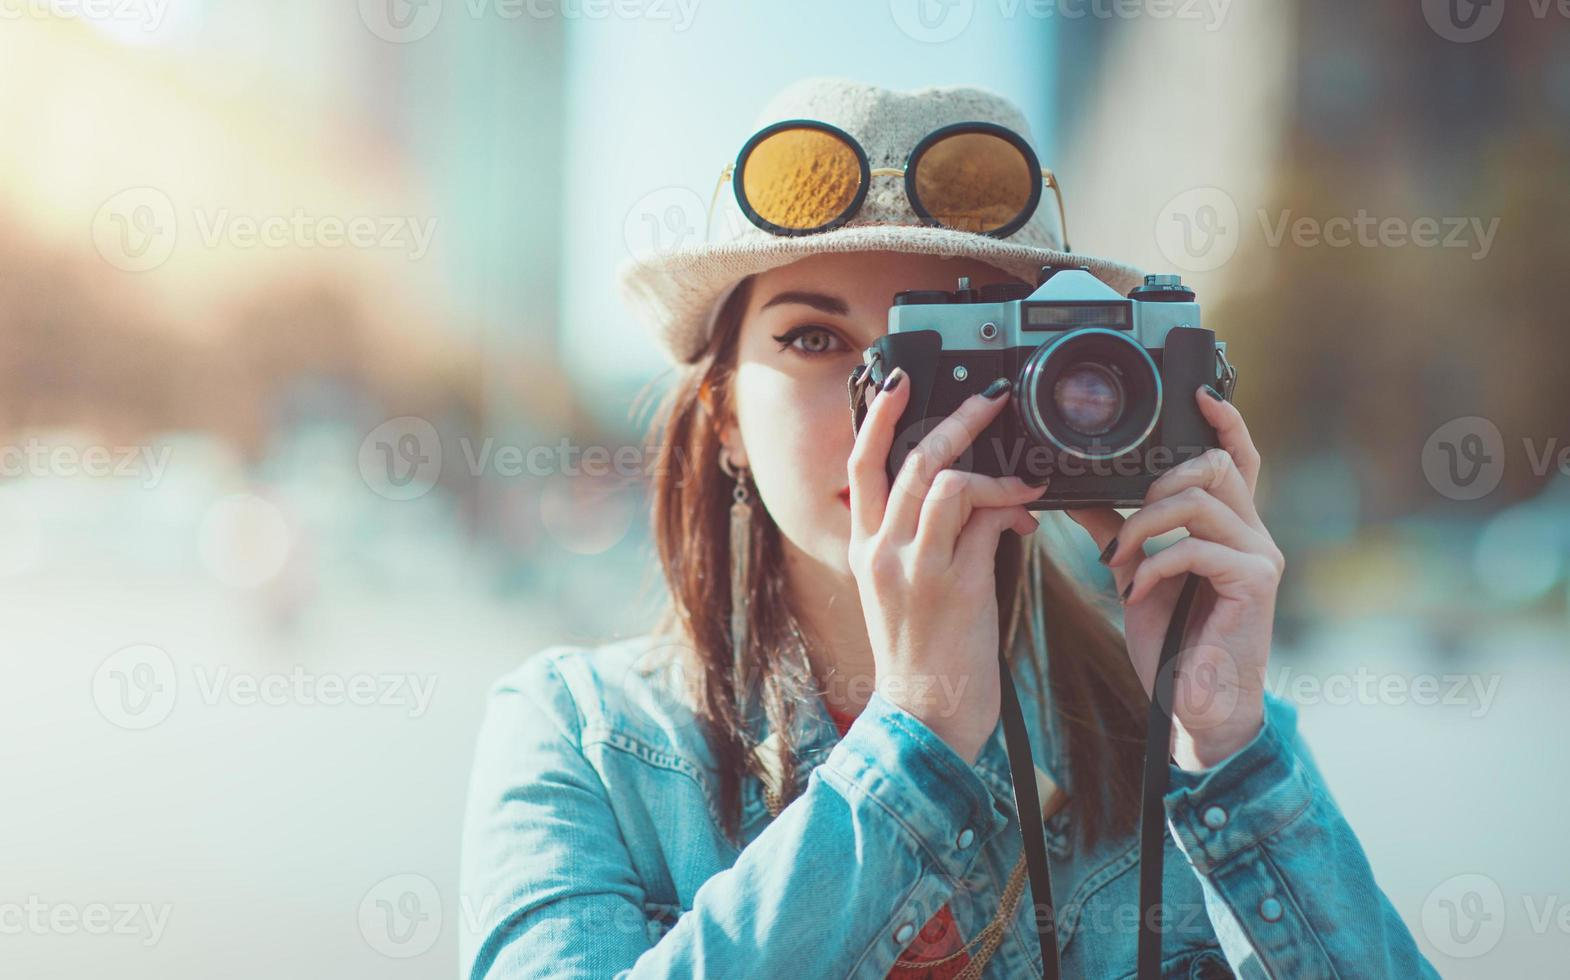 Hipster girl making picture with retro photocamera, focus on camera photo